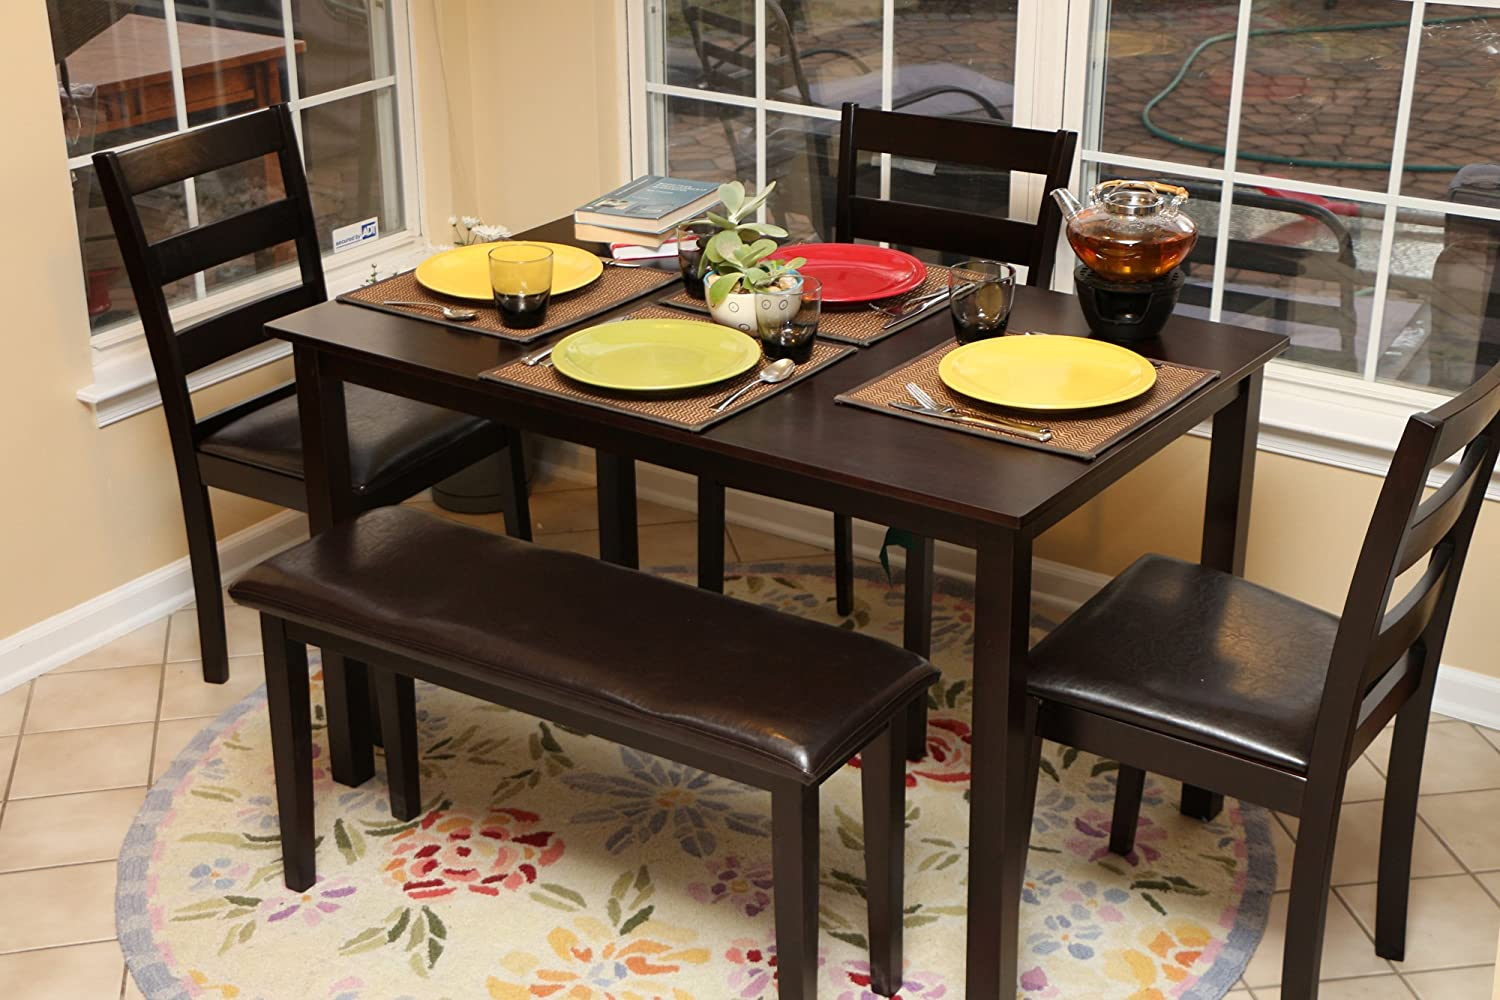 Amazon.com - Home Life 5pc Dining Dinette Table Chairs \u0026 Bench Set Espresso Finish 150236 - Table \u0026 Chair Sets & Amazon.com - Home Life 5pc Dining Dinette Table Chairs \u0026 Bench Set ...